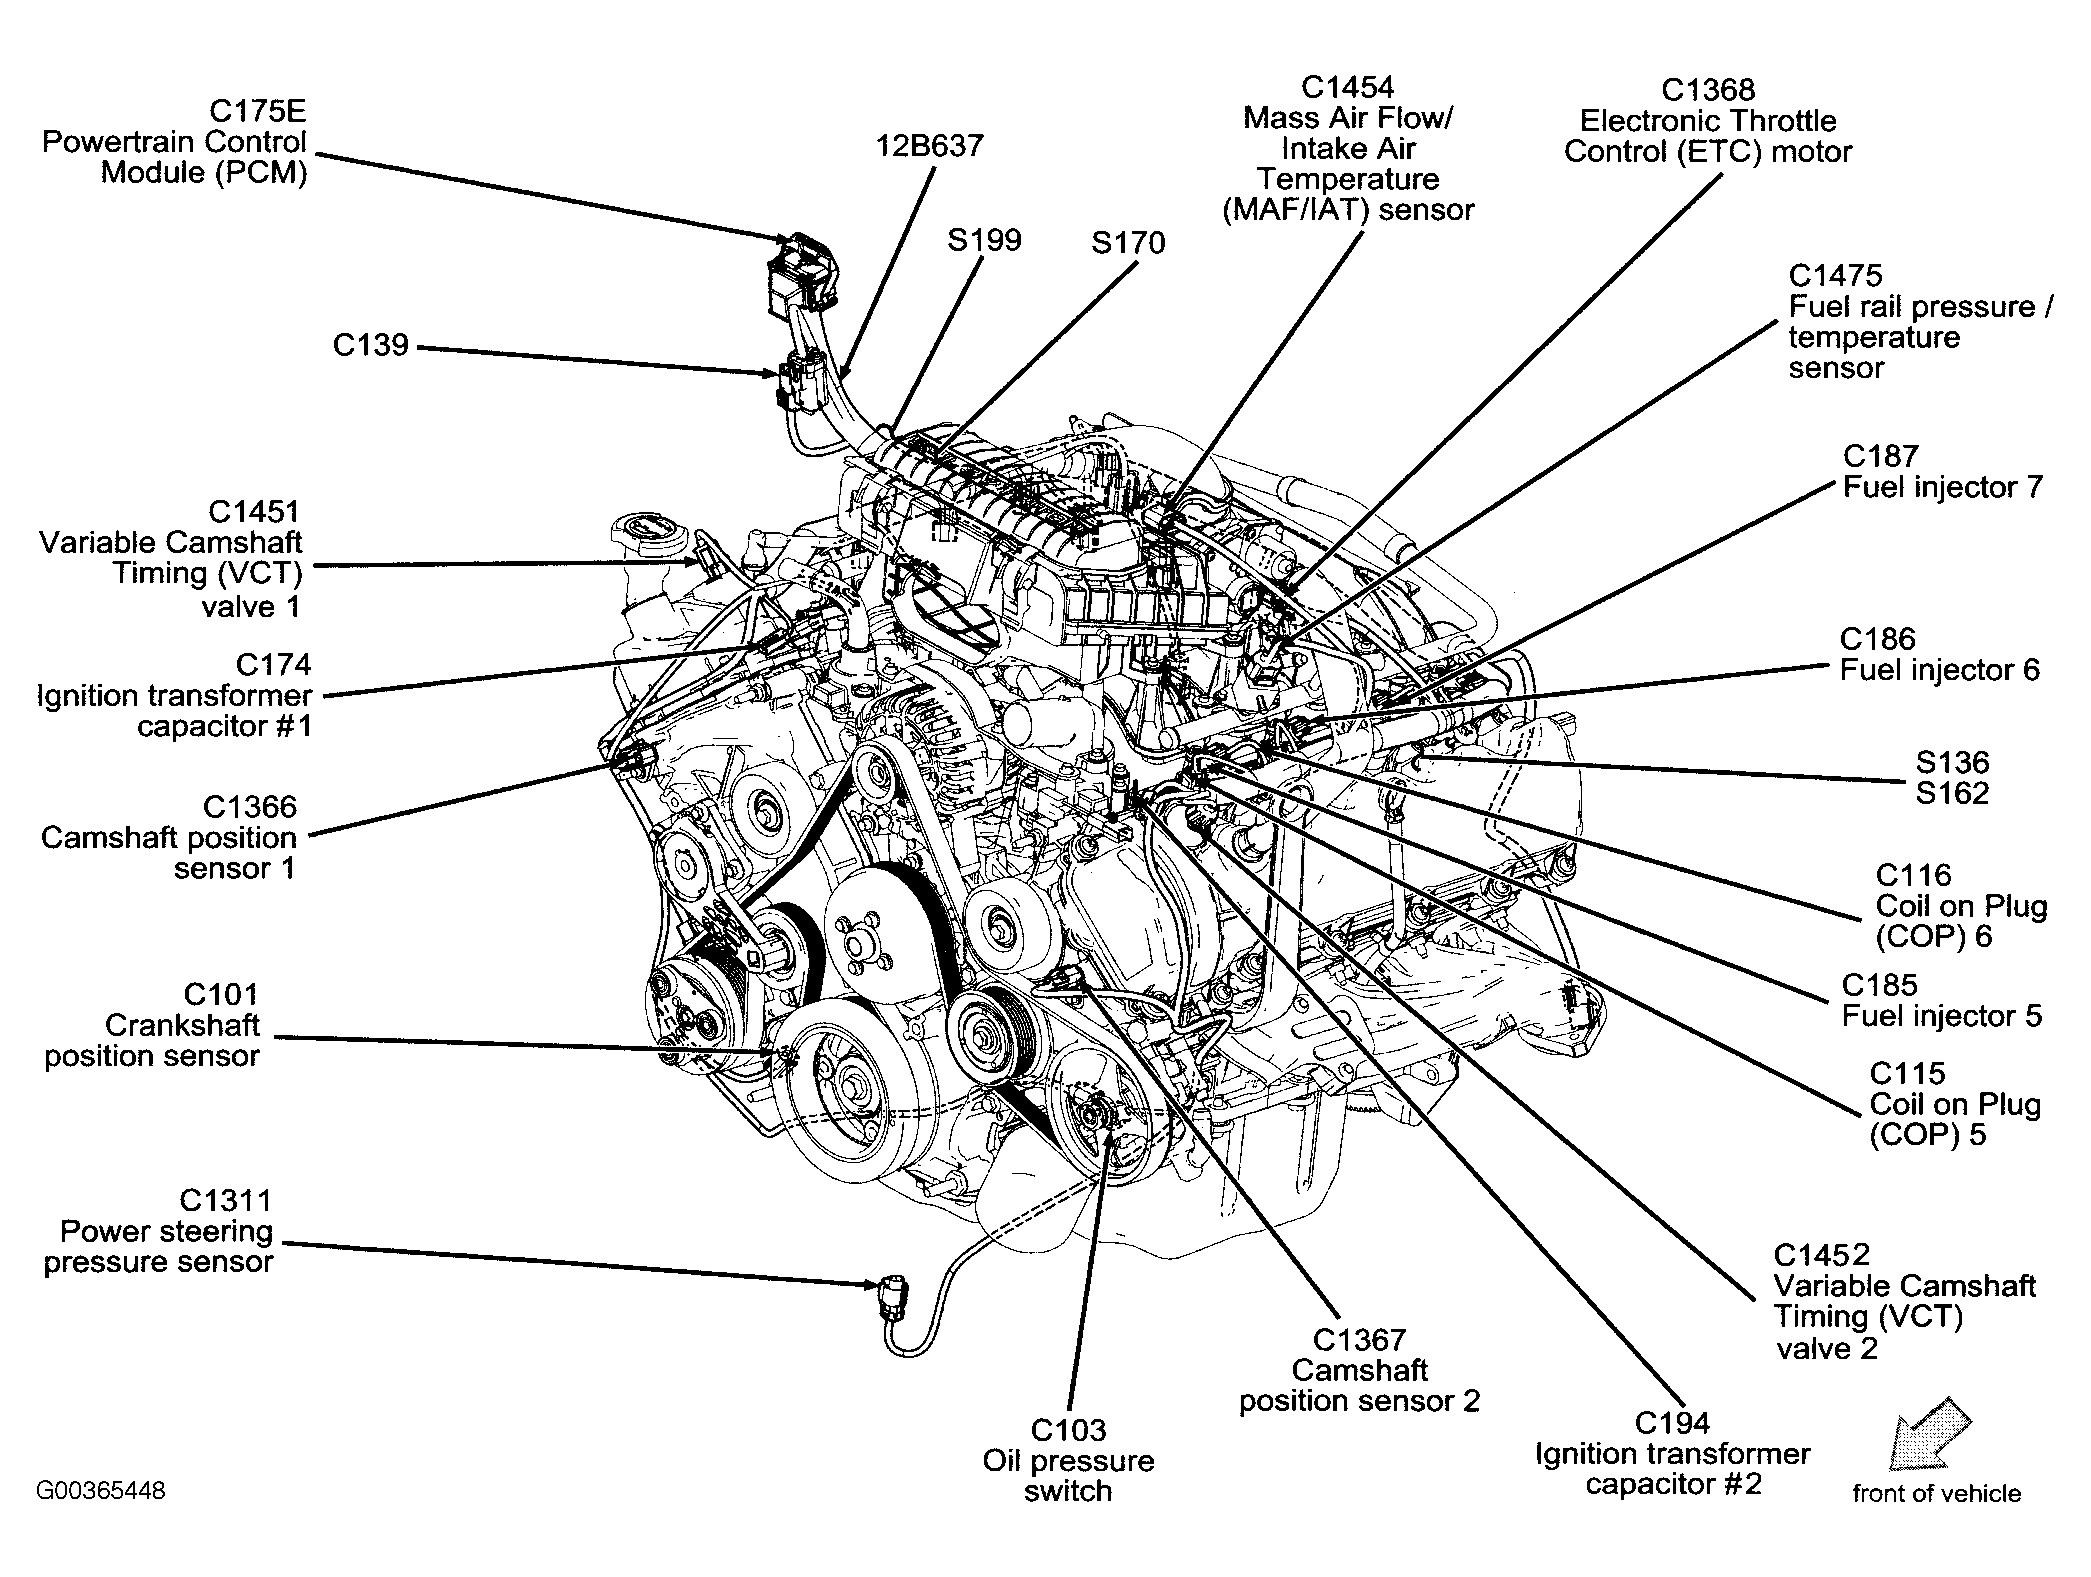 2005 ford Explorer 4 0 Engine Diagram ford Escape Engine Diagram Simple Guide About Wiring Diagram • Of 2005 ford Explorer 4 0 Engine Diagram